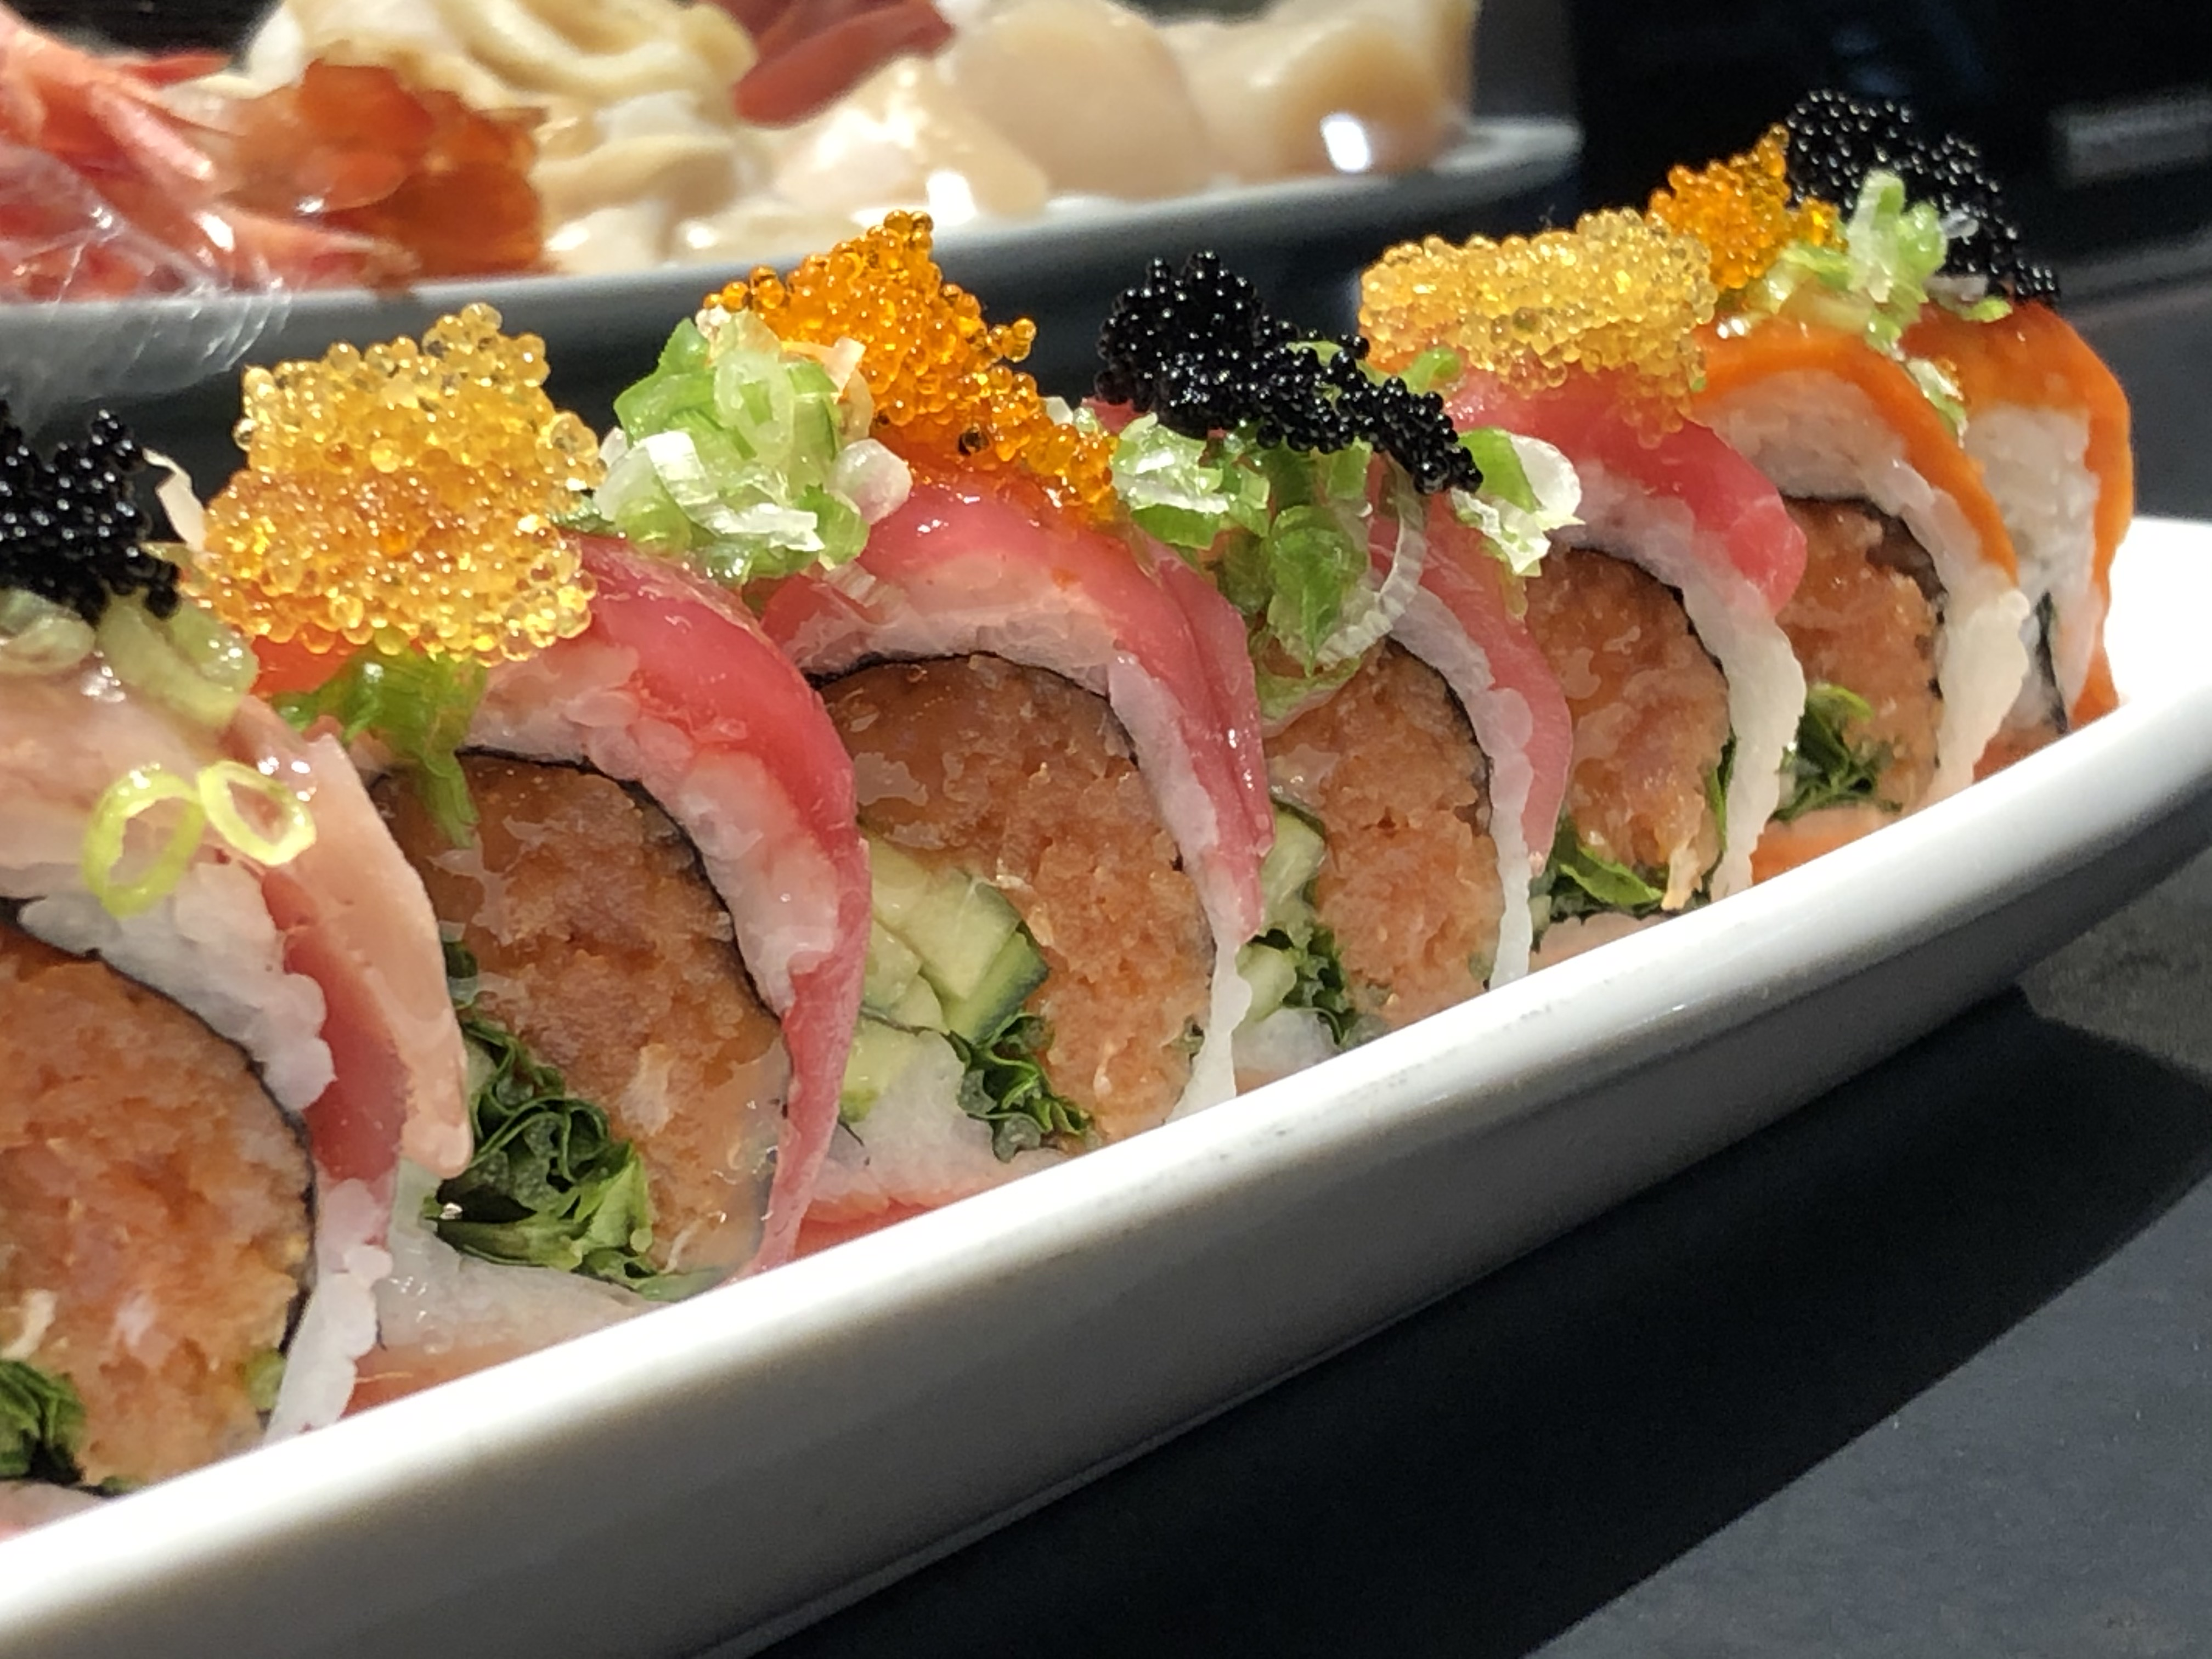 this is a good looking sushi roll